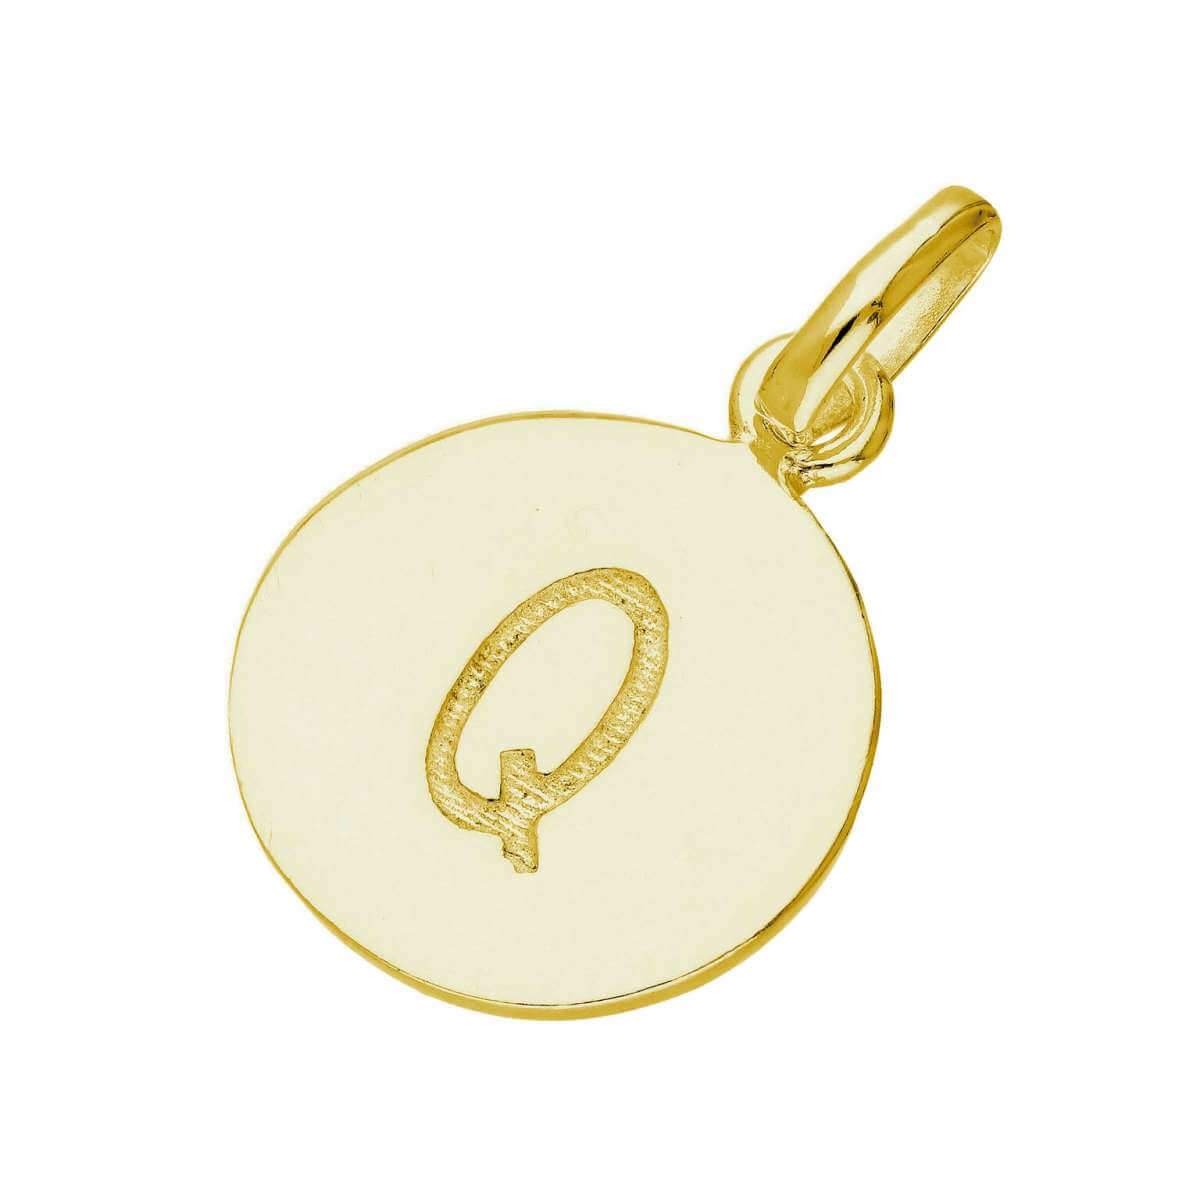 Gold Plated Sterling Silver Engravable Letter Q Charm